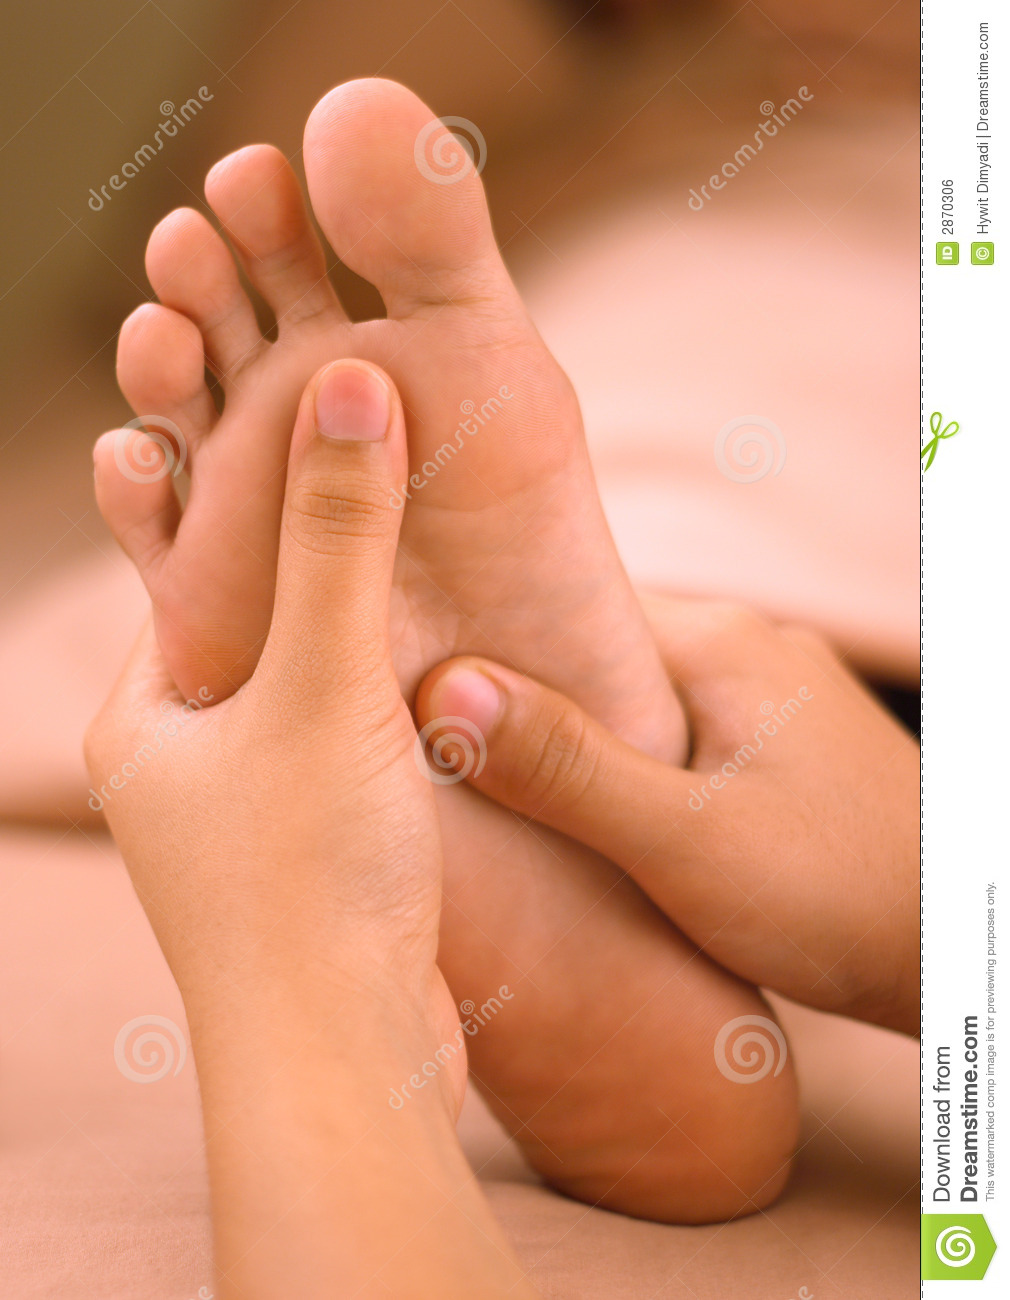 Foot spa business plan